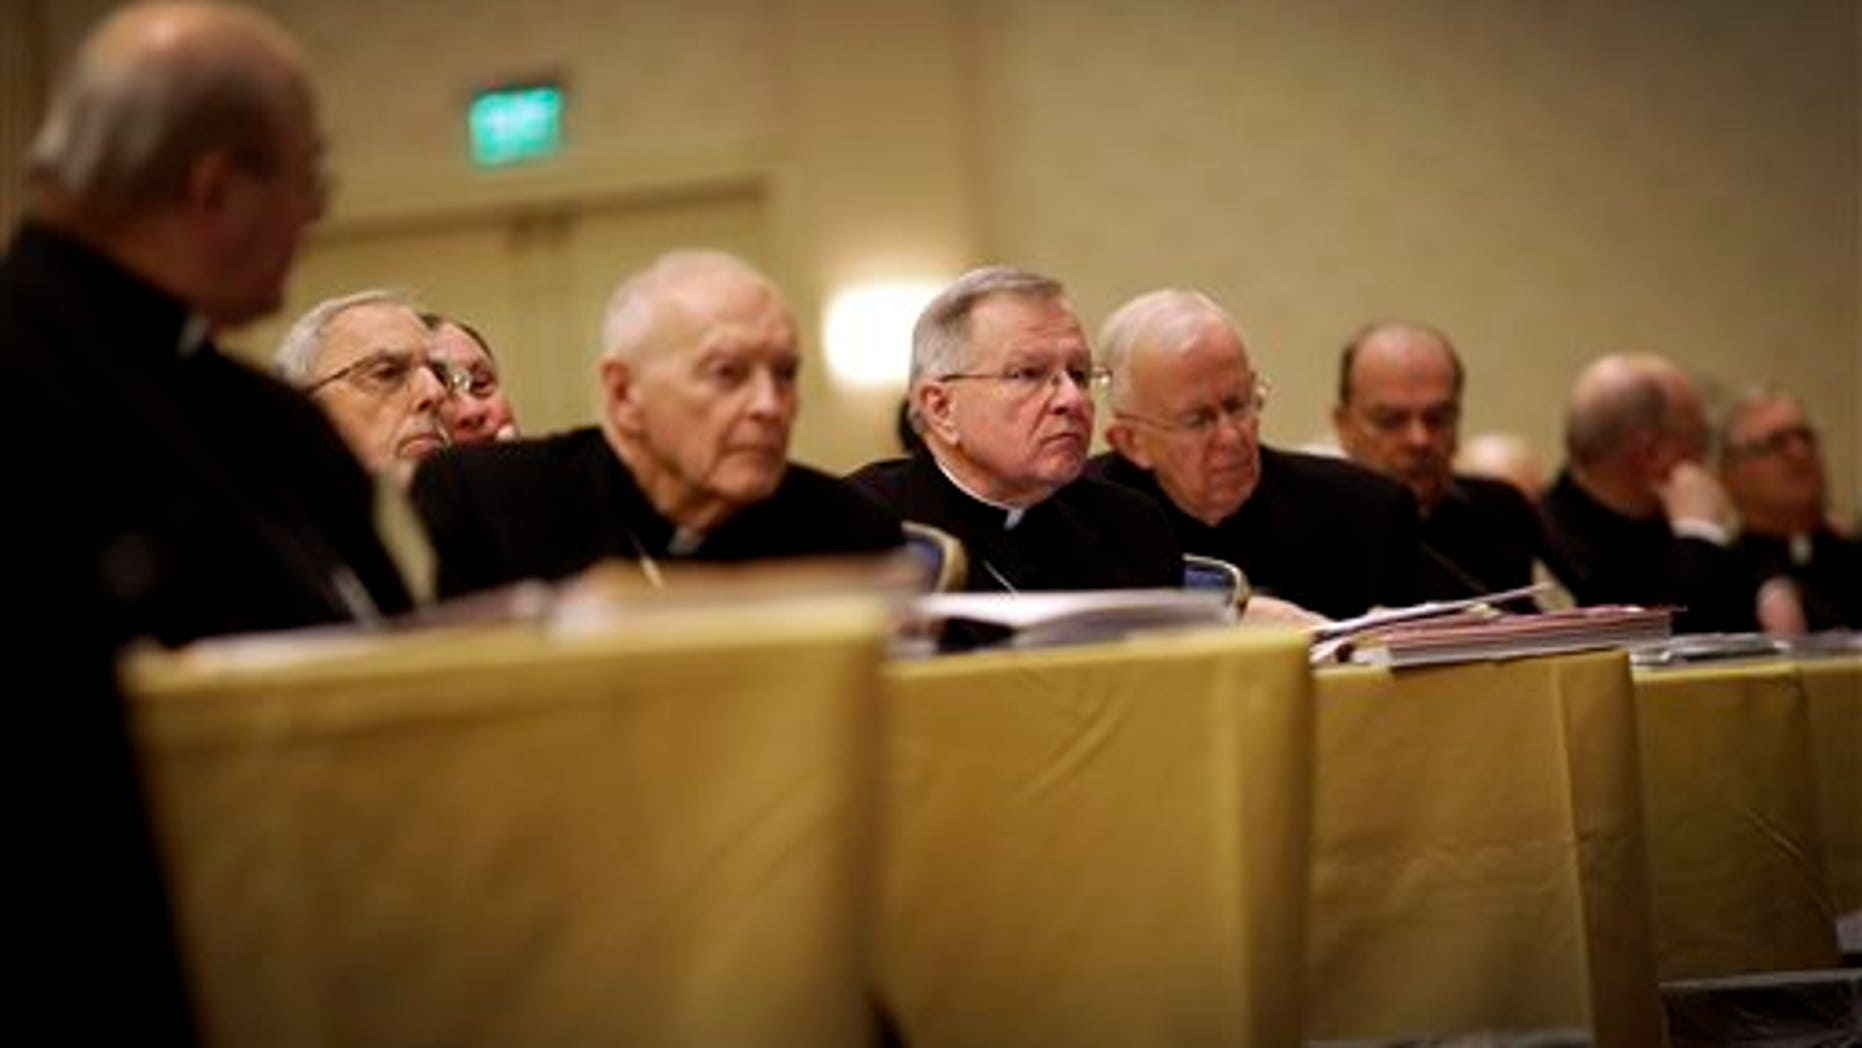 Archbishop Gregory Aymond of New Orleans, center, listens to a report as he sits with fellow bishops at the United States Conference of Catholic Bishops' annual fall meeting in Baltimore, Monday, Nov. 11, 2013, their first national meeting since Pope Francis was elected. (AP Photo/Patrick Semansky)